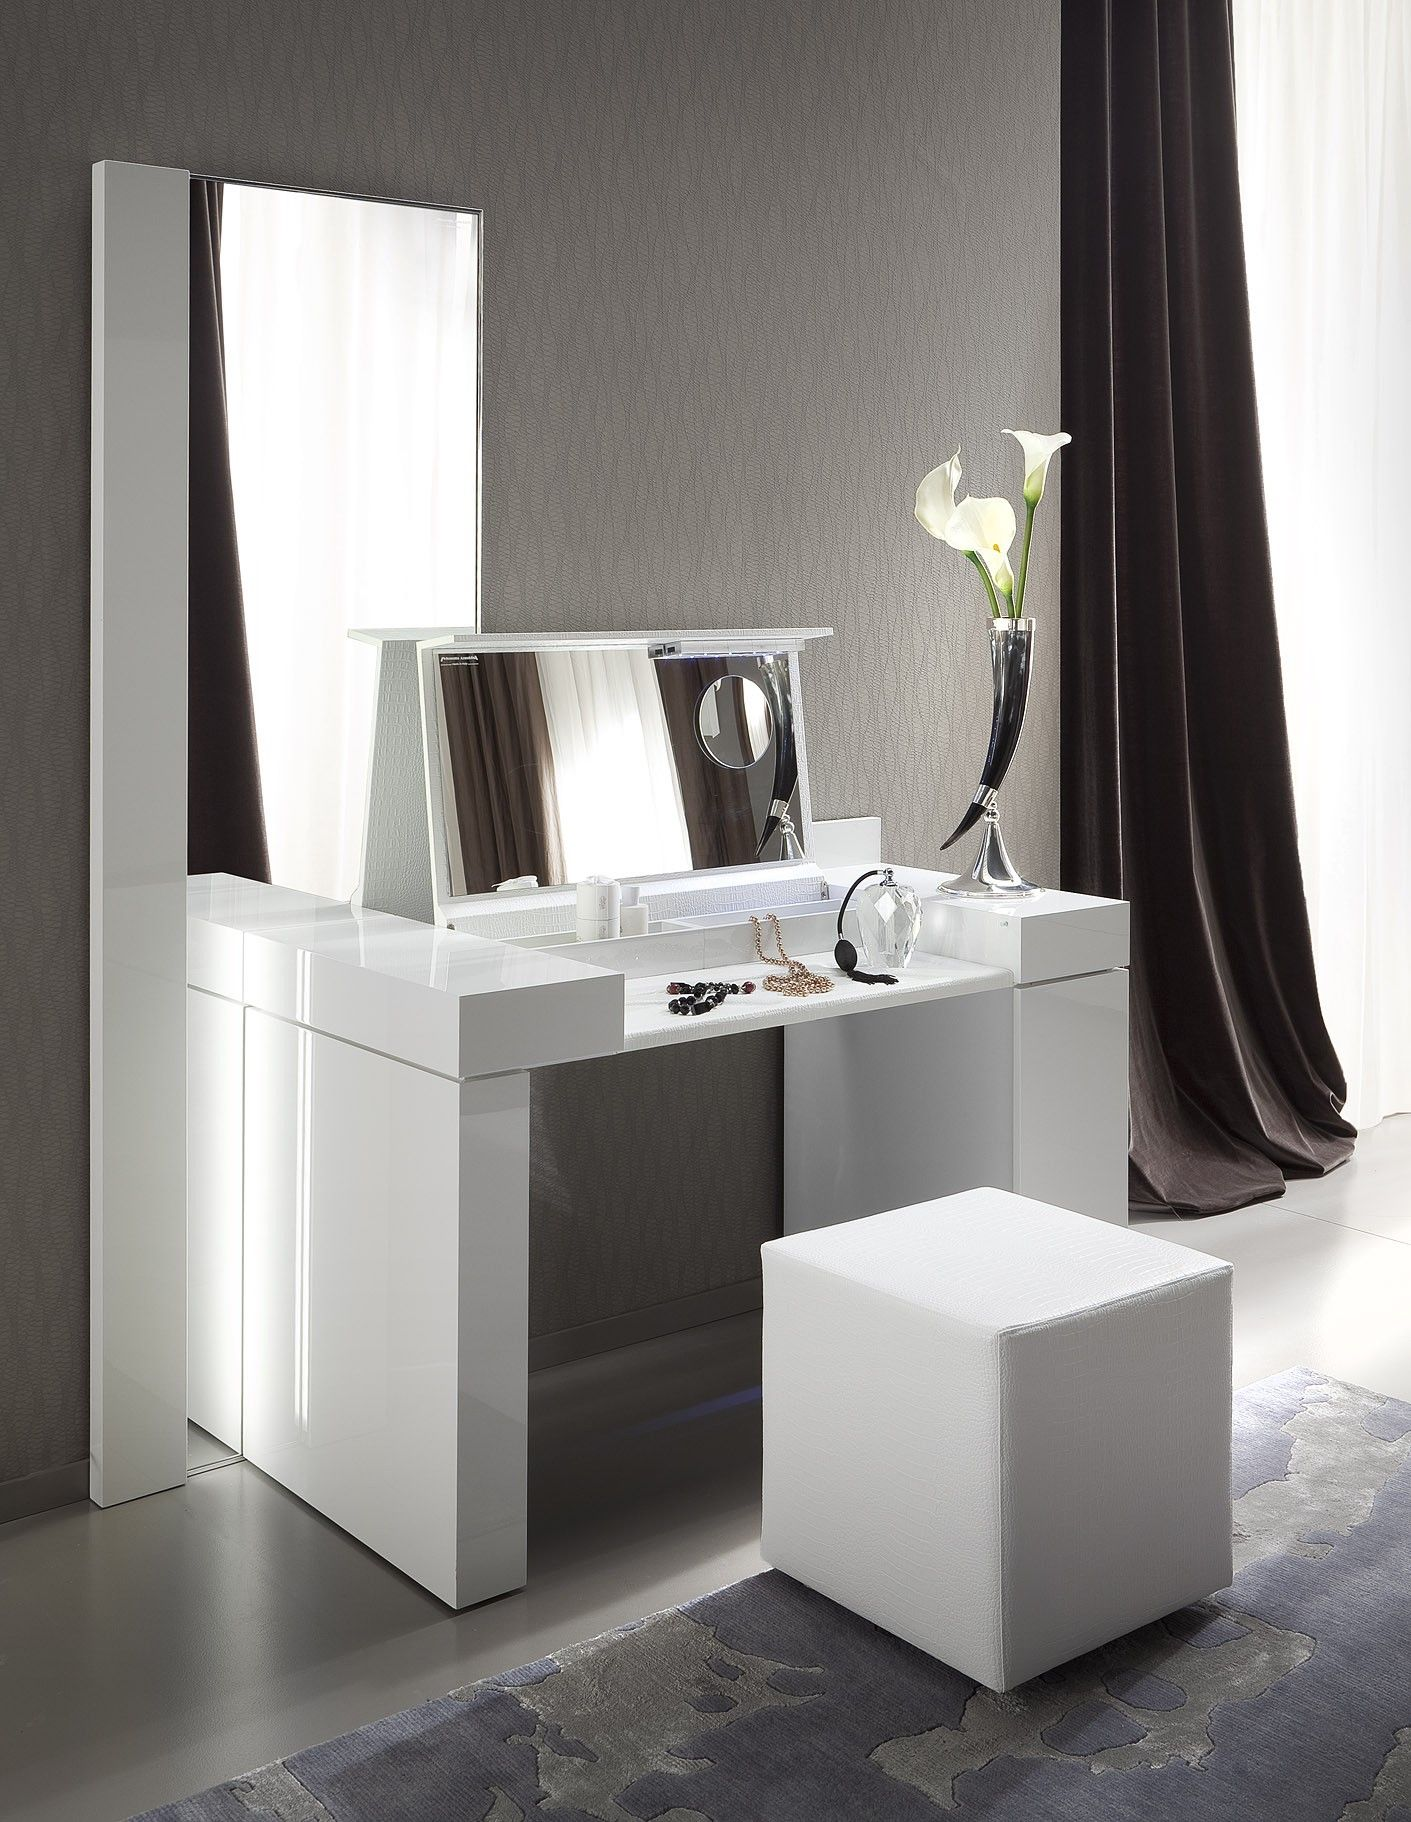 Bedroom dressing table decorating ideas - Modern Bedroom Furniture Dressing Table